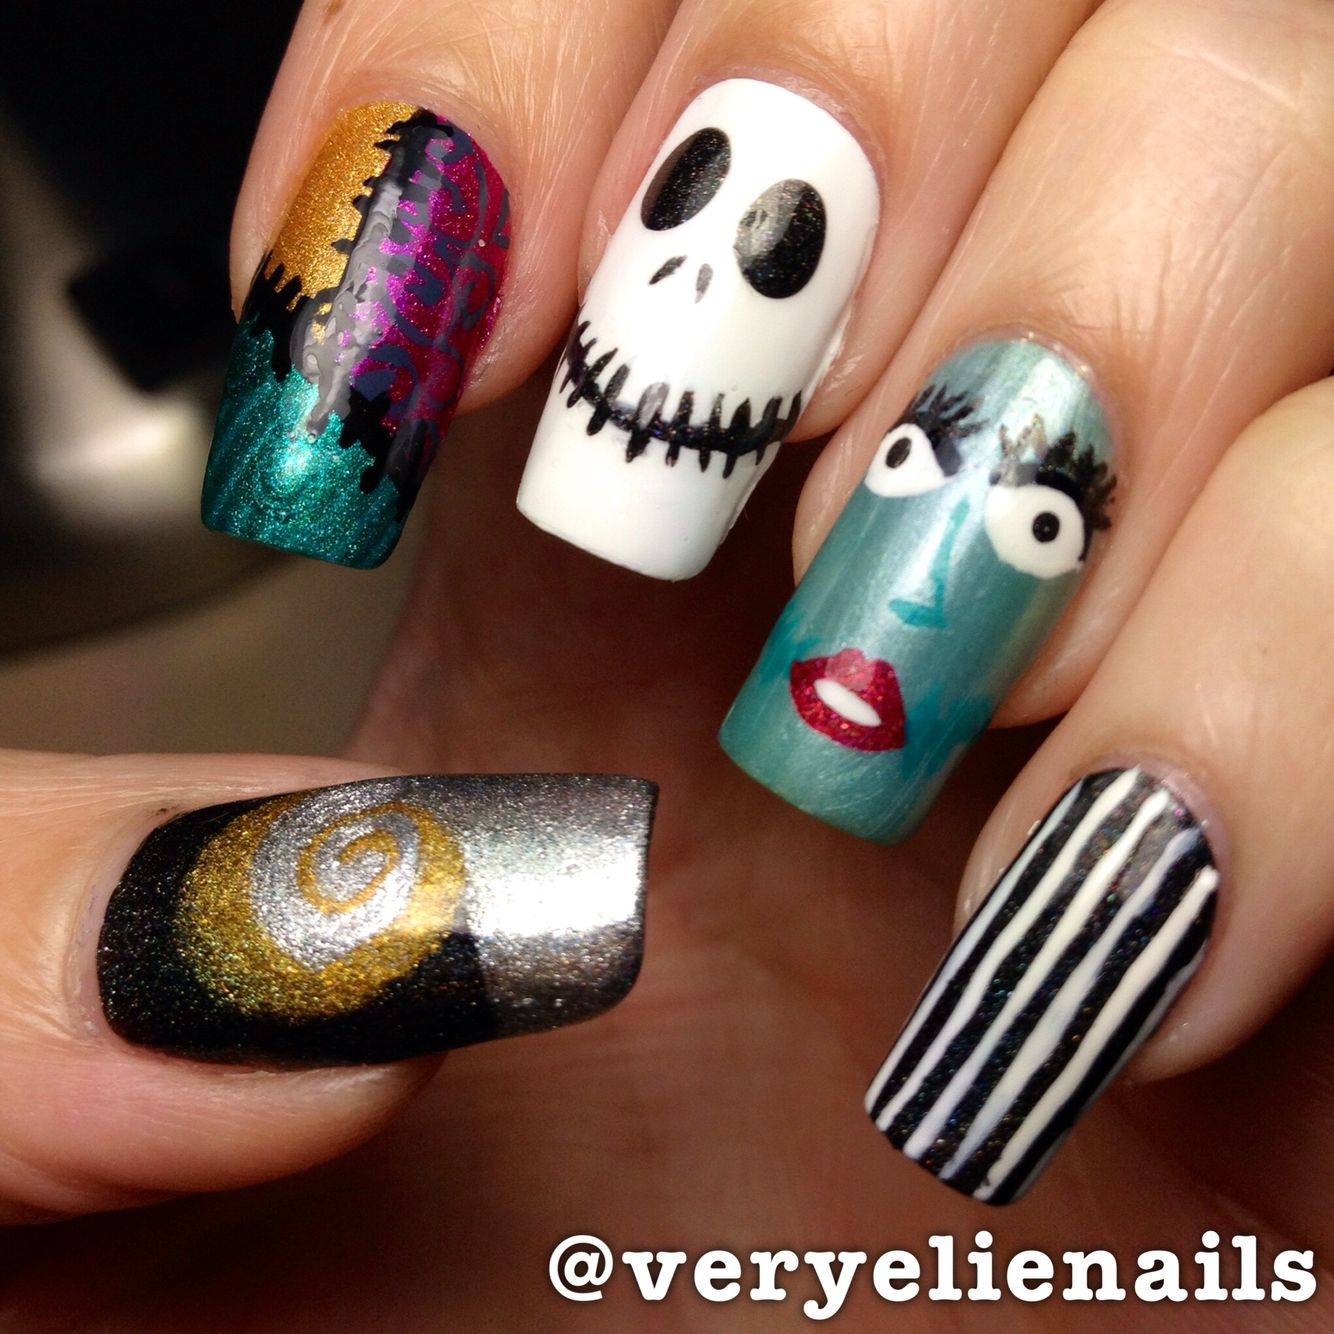 A couple of years ago, when I actually had a LOT of free time to freehand designs (I'm no artist! So I'm kinda proud of these, even jacked up Sally 😂) #veryelienails #nailart